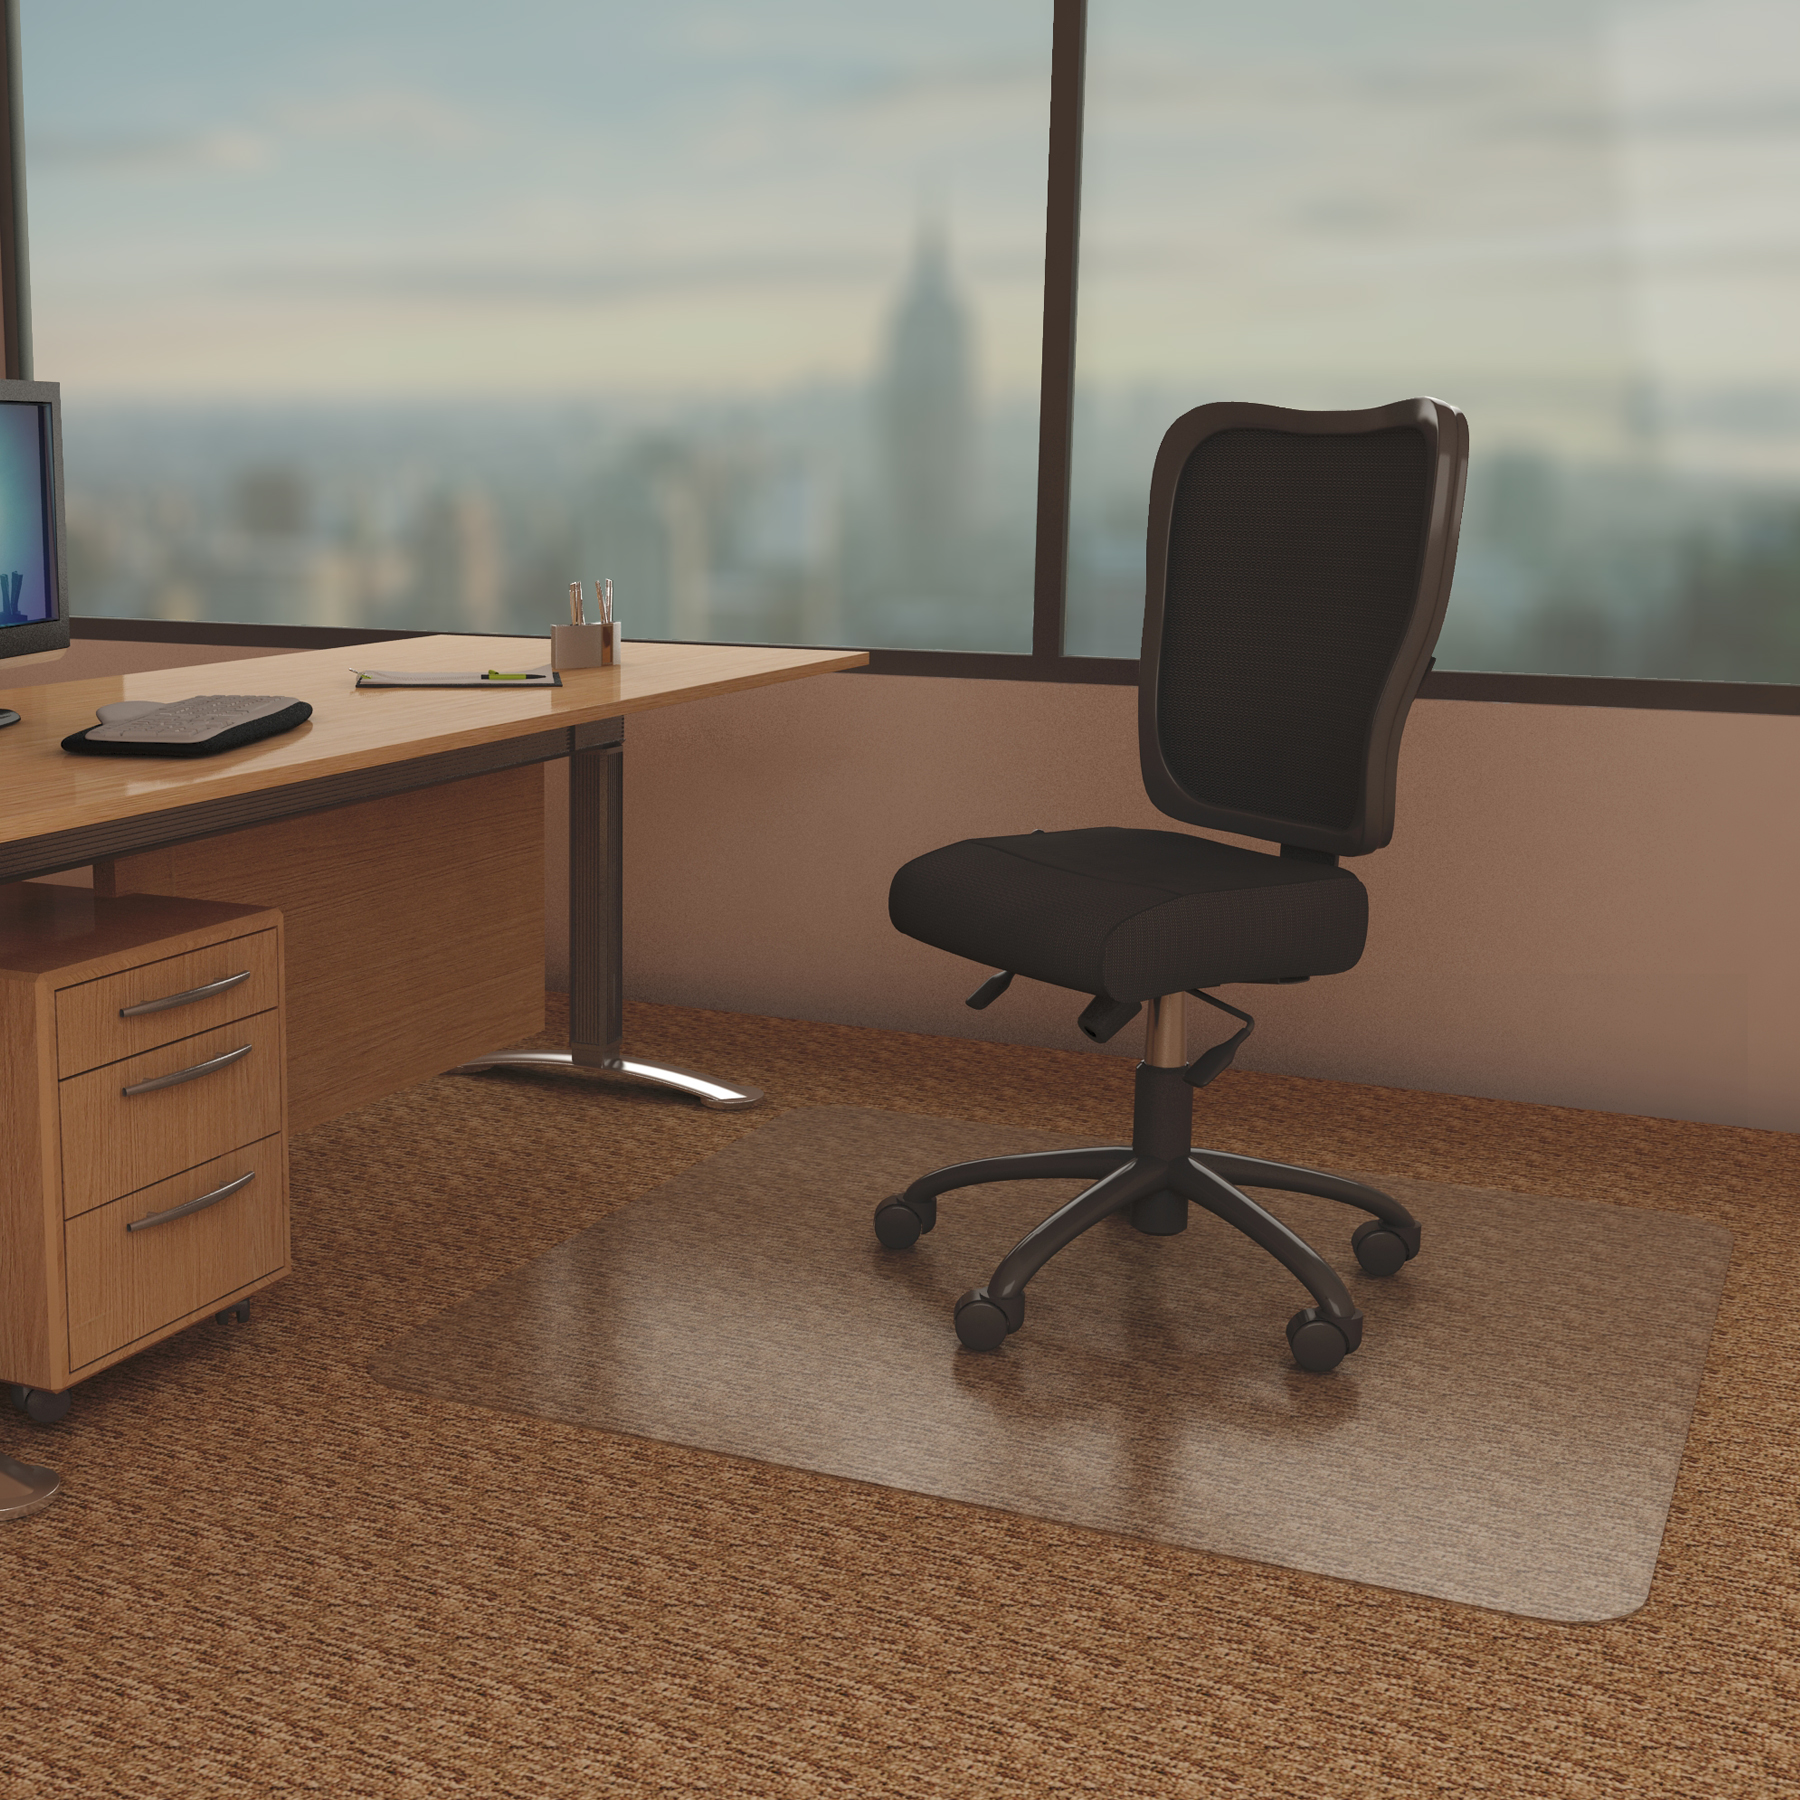 Static Mat For Office : Anchormat best chair mat for low pile carpet